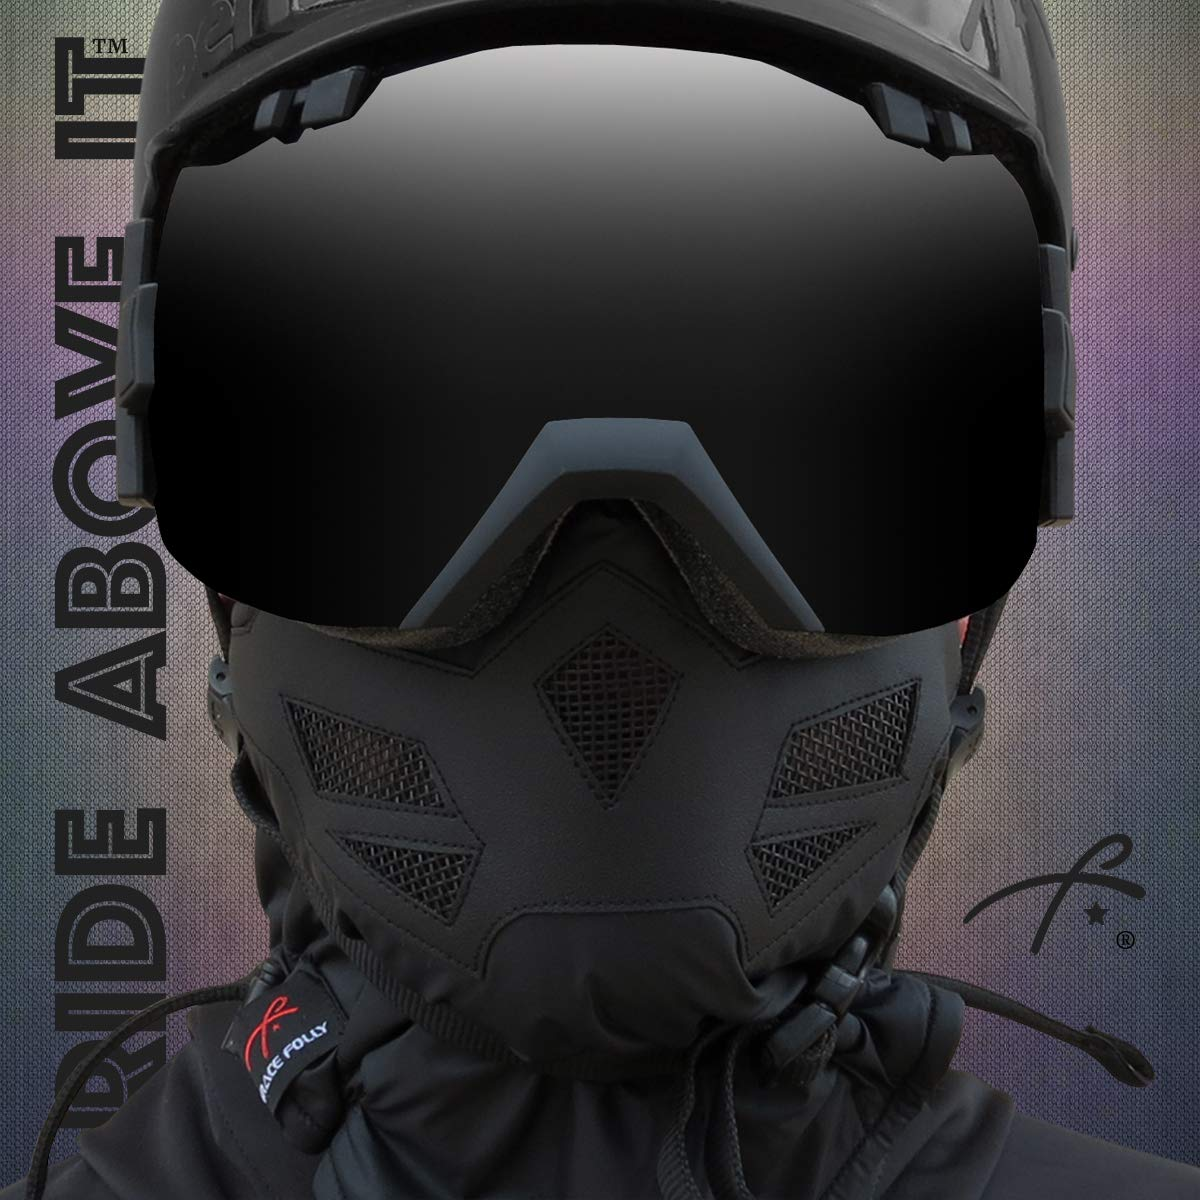 Use this Half Balaclava for Snowboarding Many Colors Ski Motorcycle. Half Face Mask for Cold Winter Weather